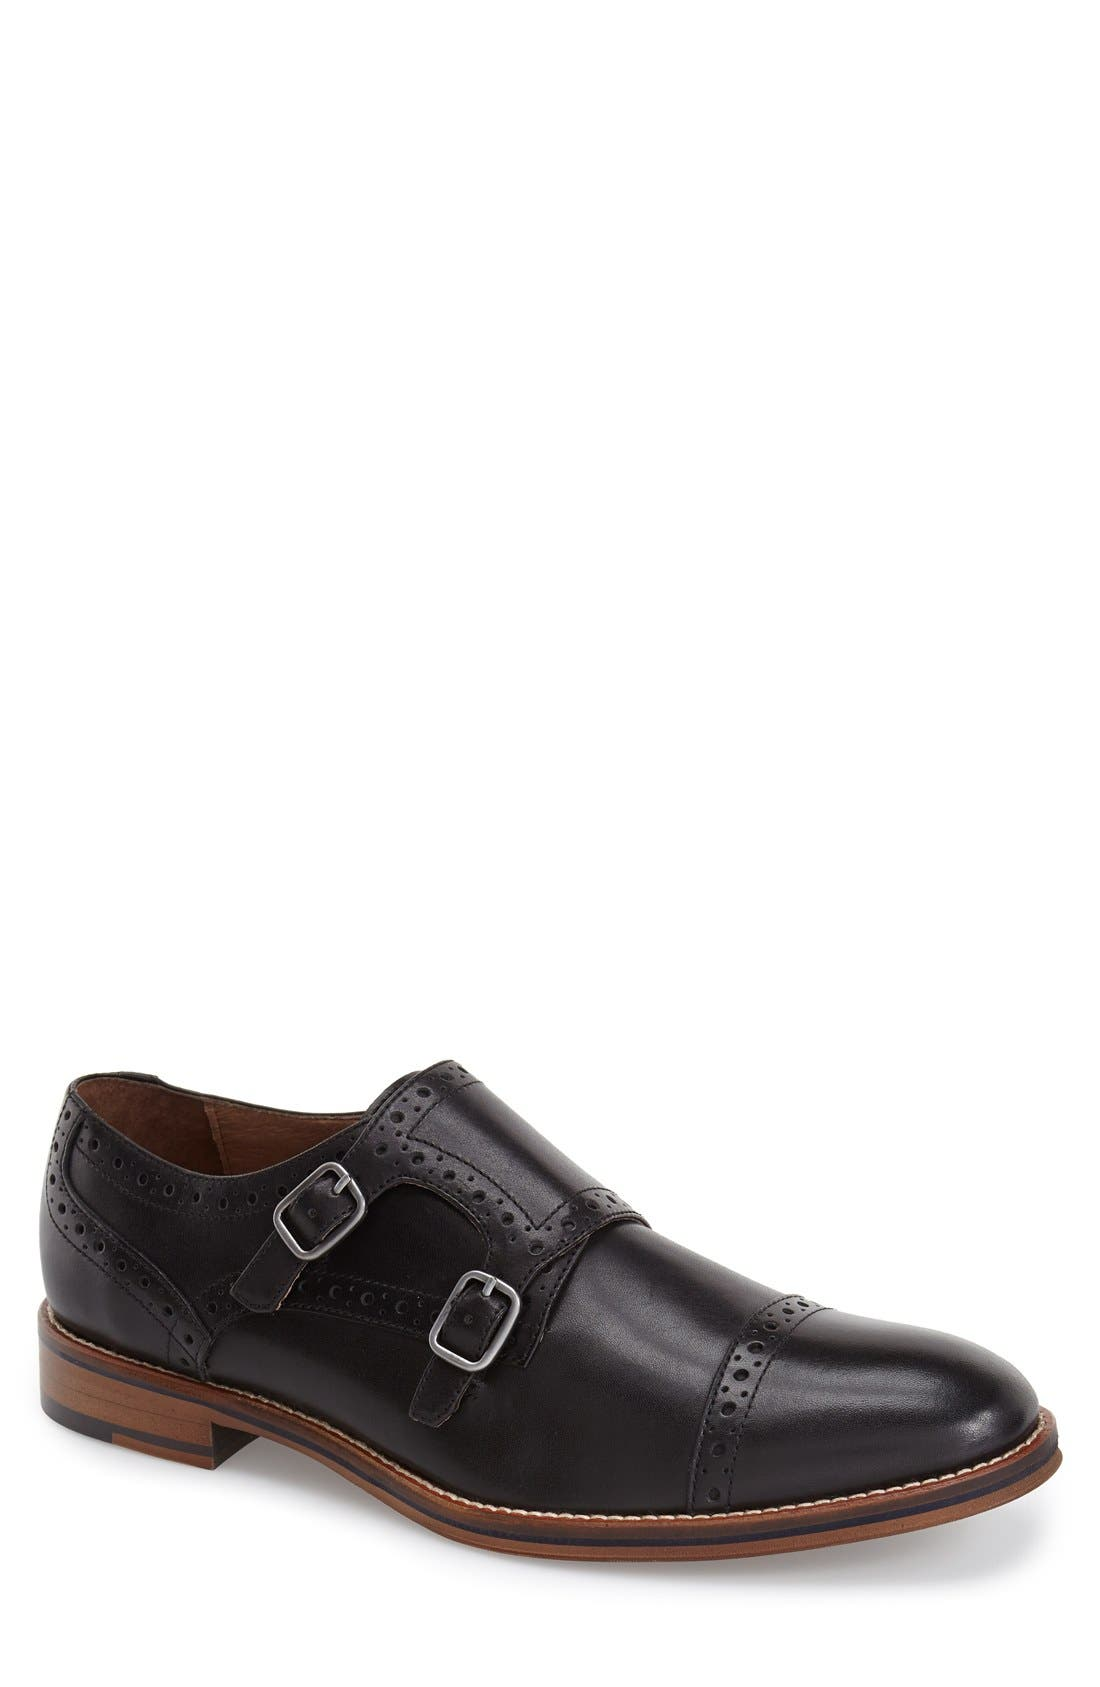 Johnston & Murphy 'Conard' Double Monk Strap Slip-On (Men)